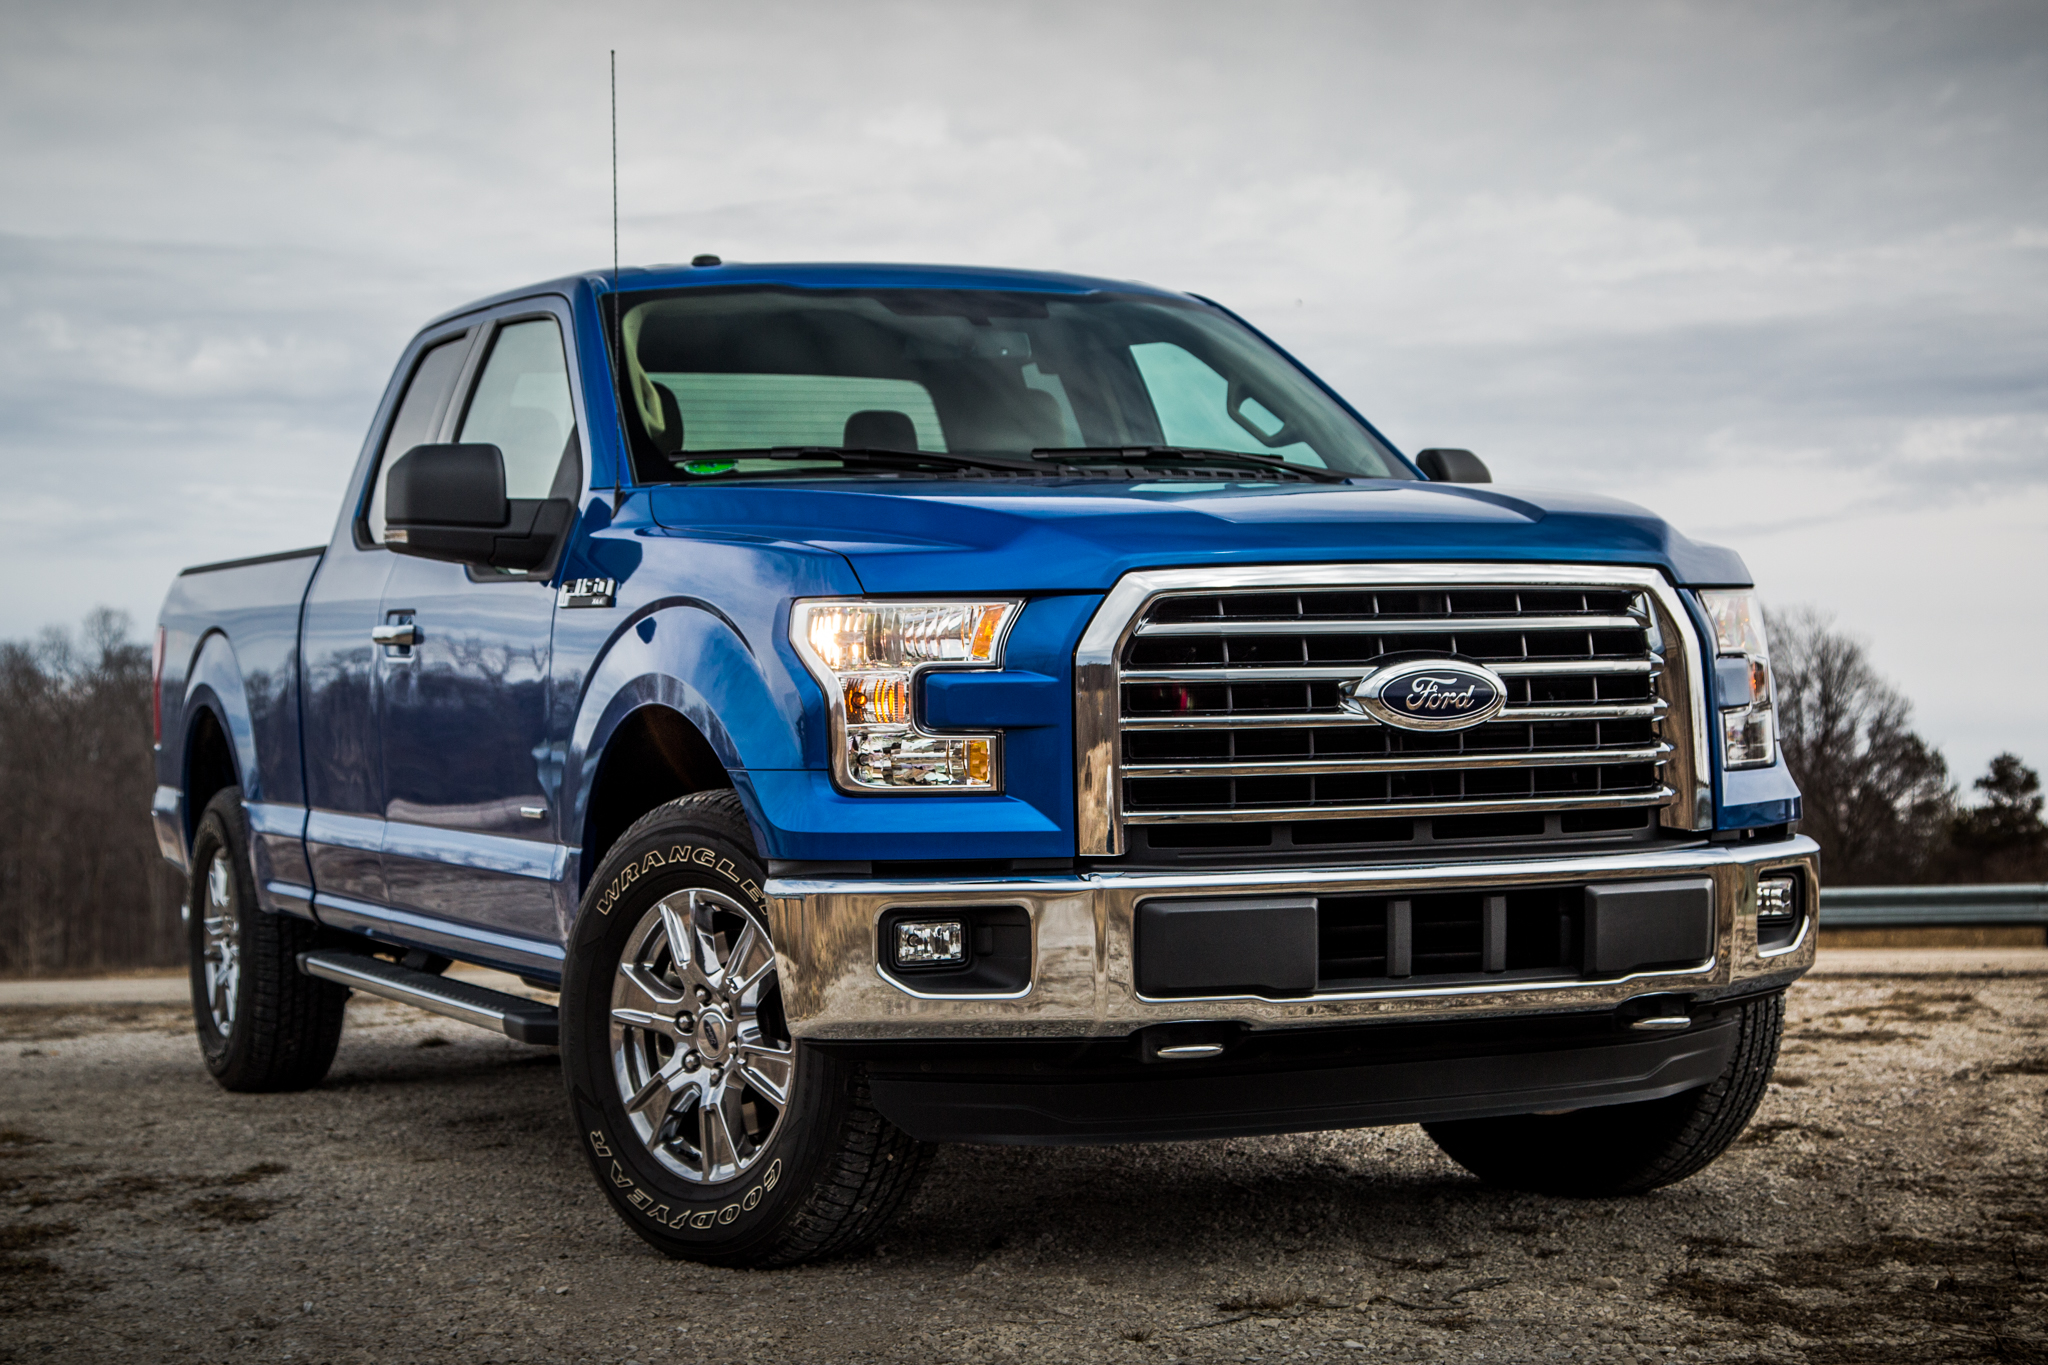 We have a deep appreciation of the technology behind the 2015 ford f 150s aluminum construction and the way the diet allows for smaller more efficient